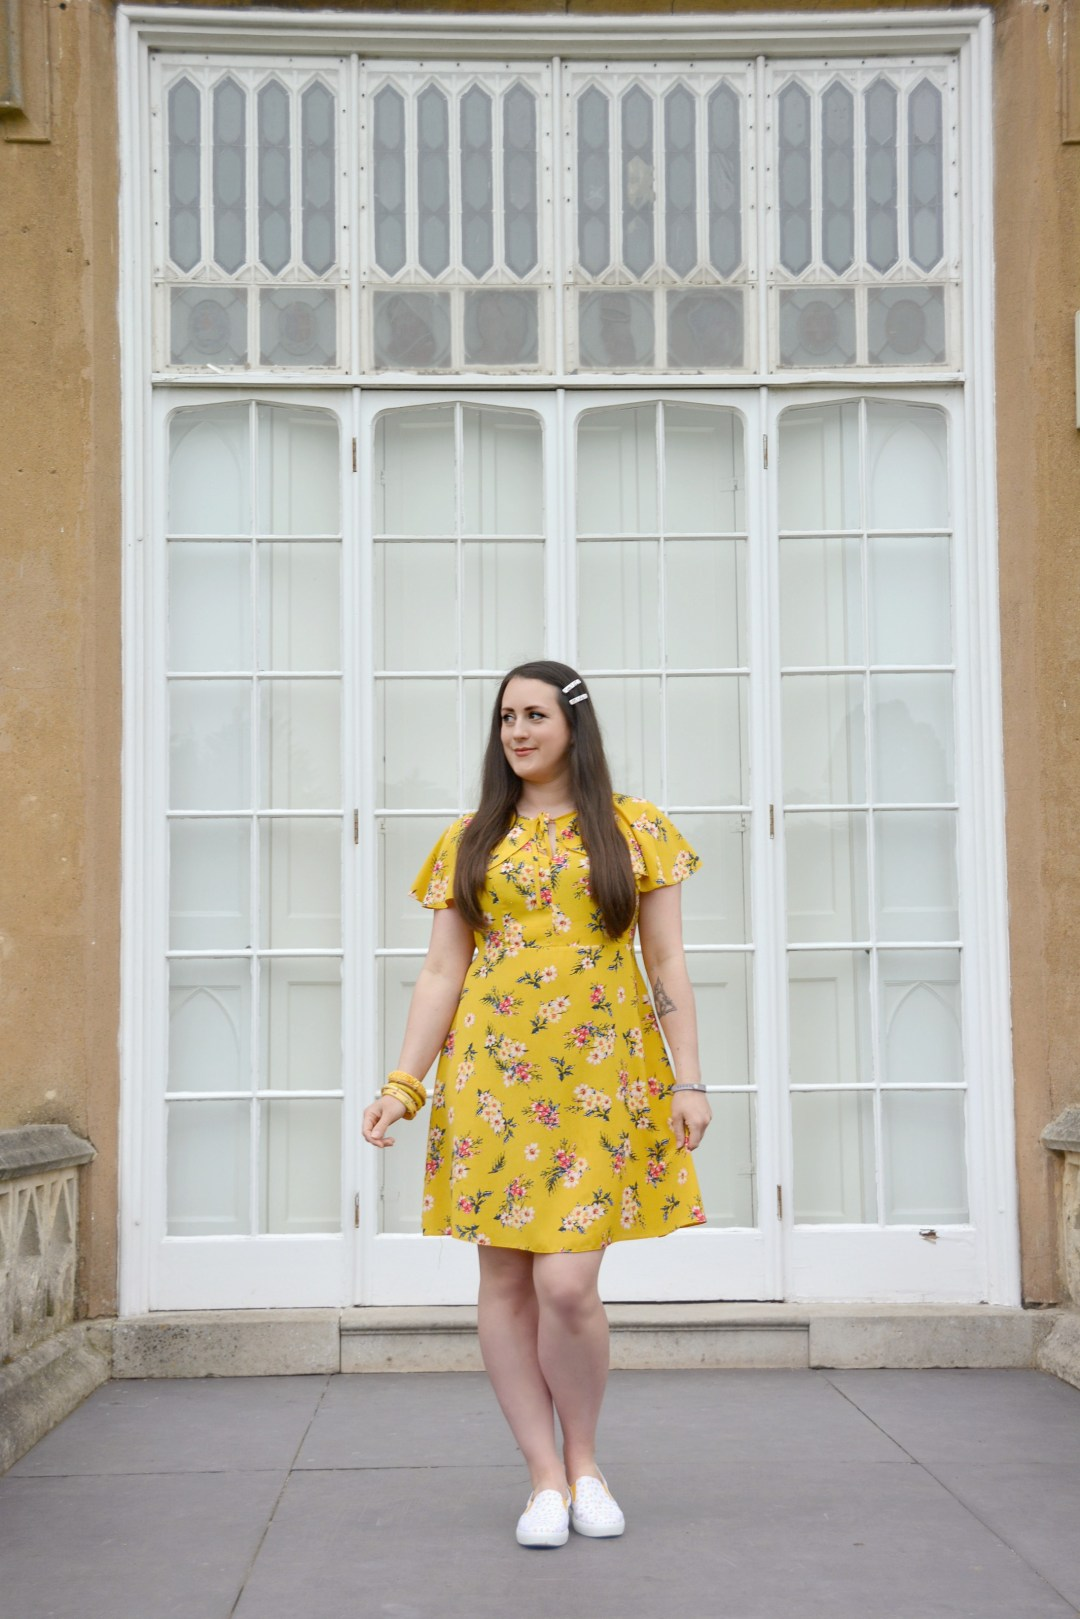 Pretty Daffodil Shoes for Marie Curie - Hotter Tara Shoe Review | Vintage Frills